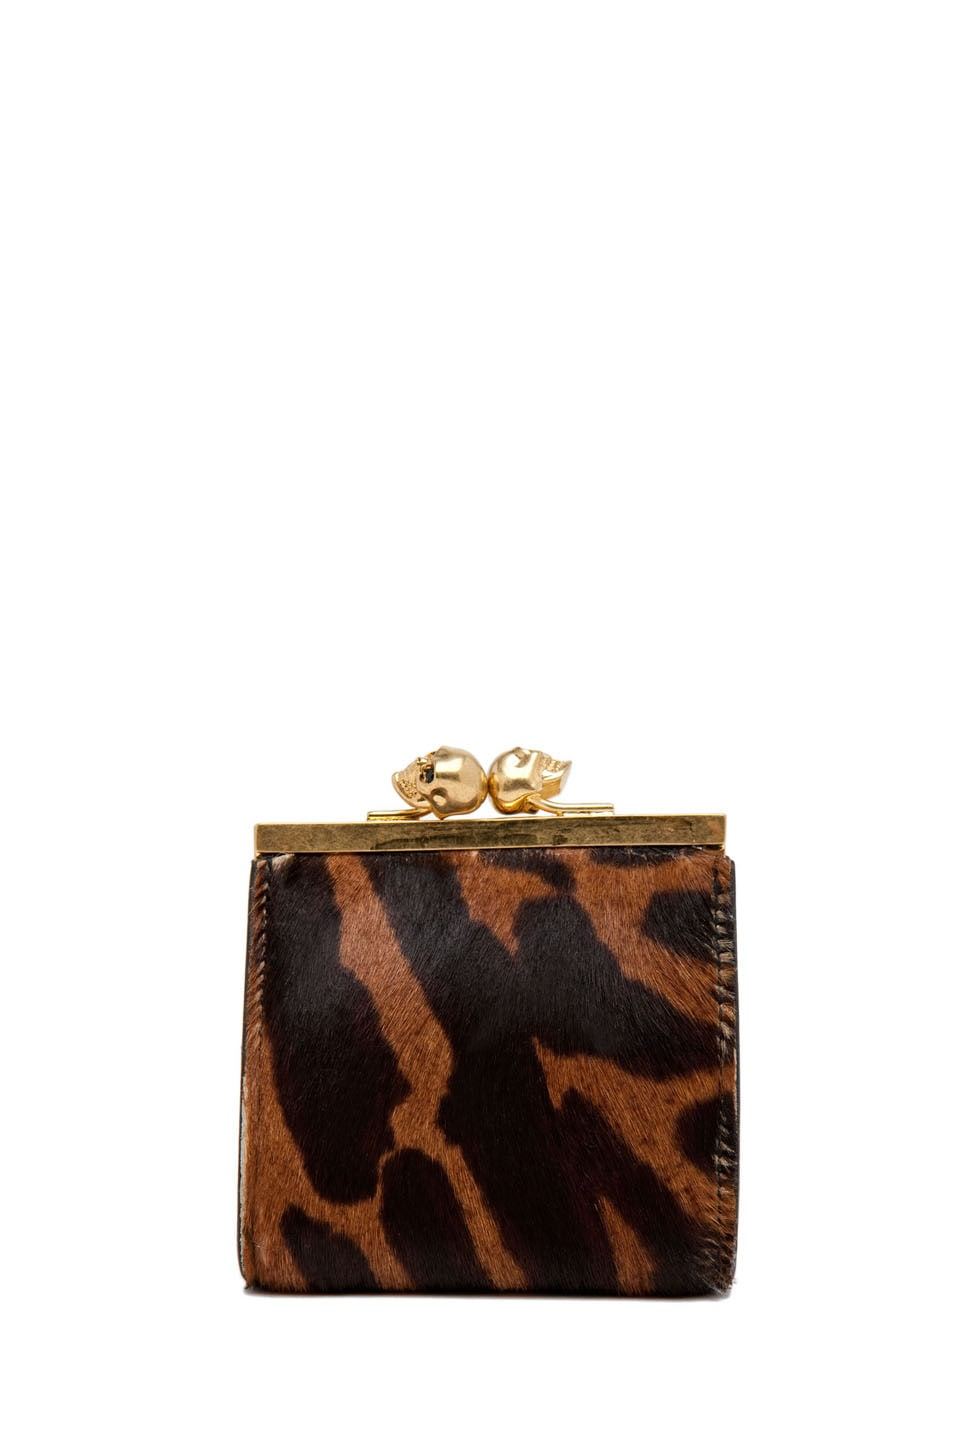 Image 1 of Alexander McQueen Coin Purse in Natural/Black